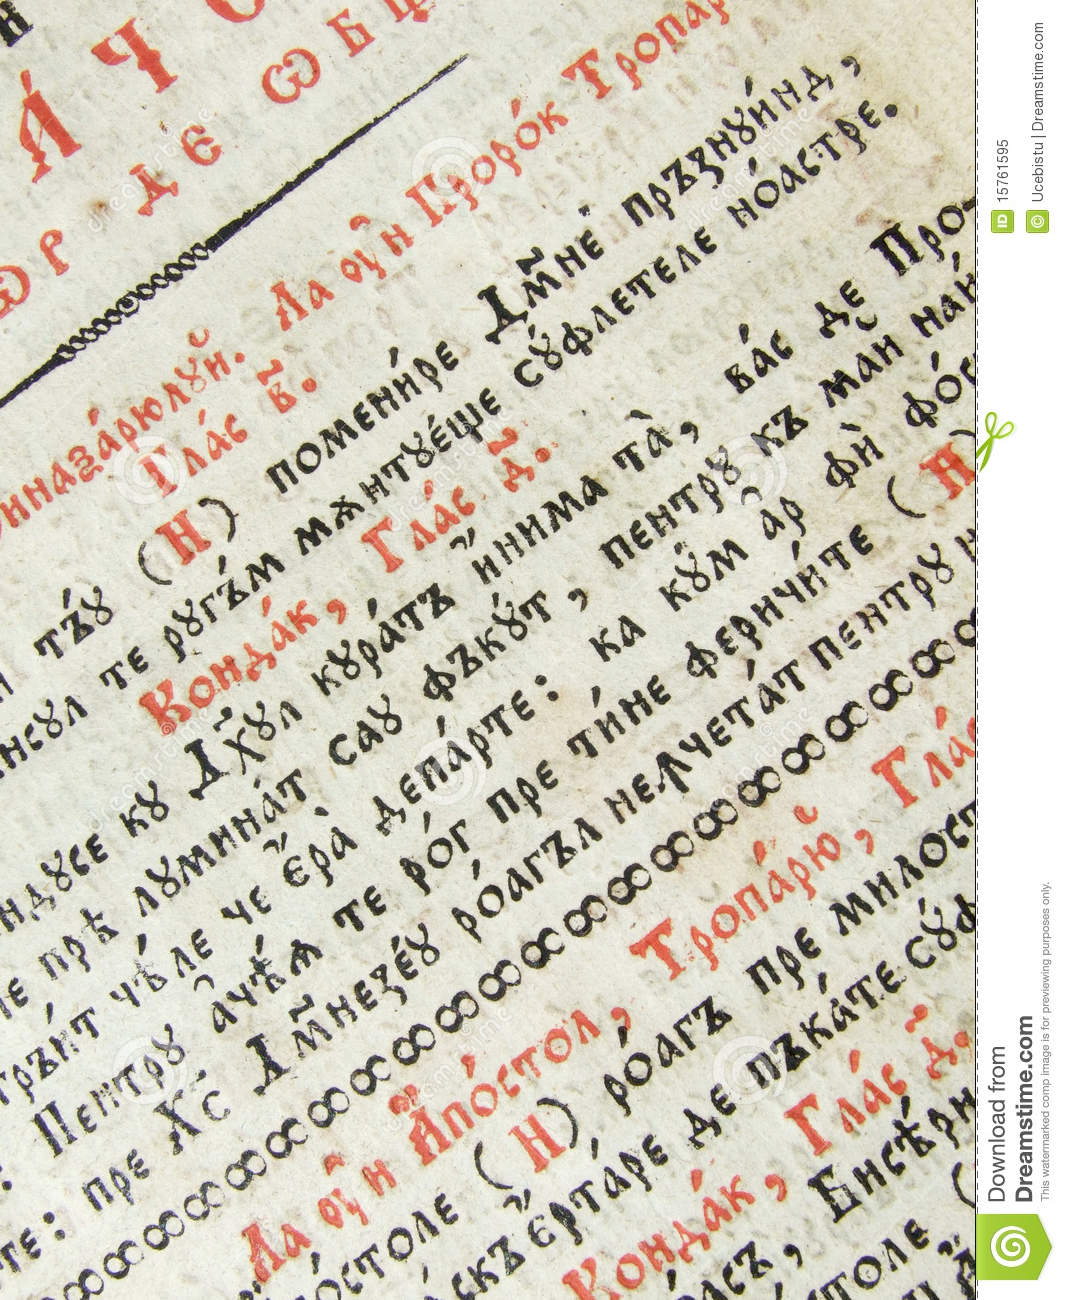 Other Religions Practices Sacred Texts: Old Religious Text Royalty Free Stock Photo